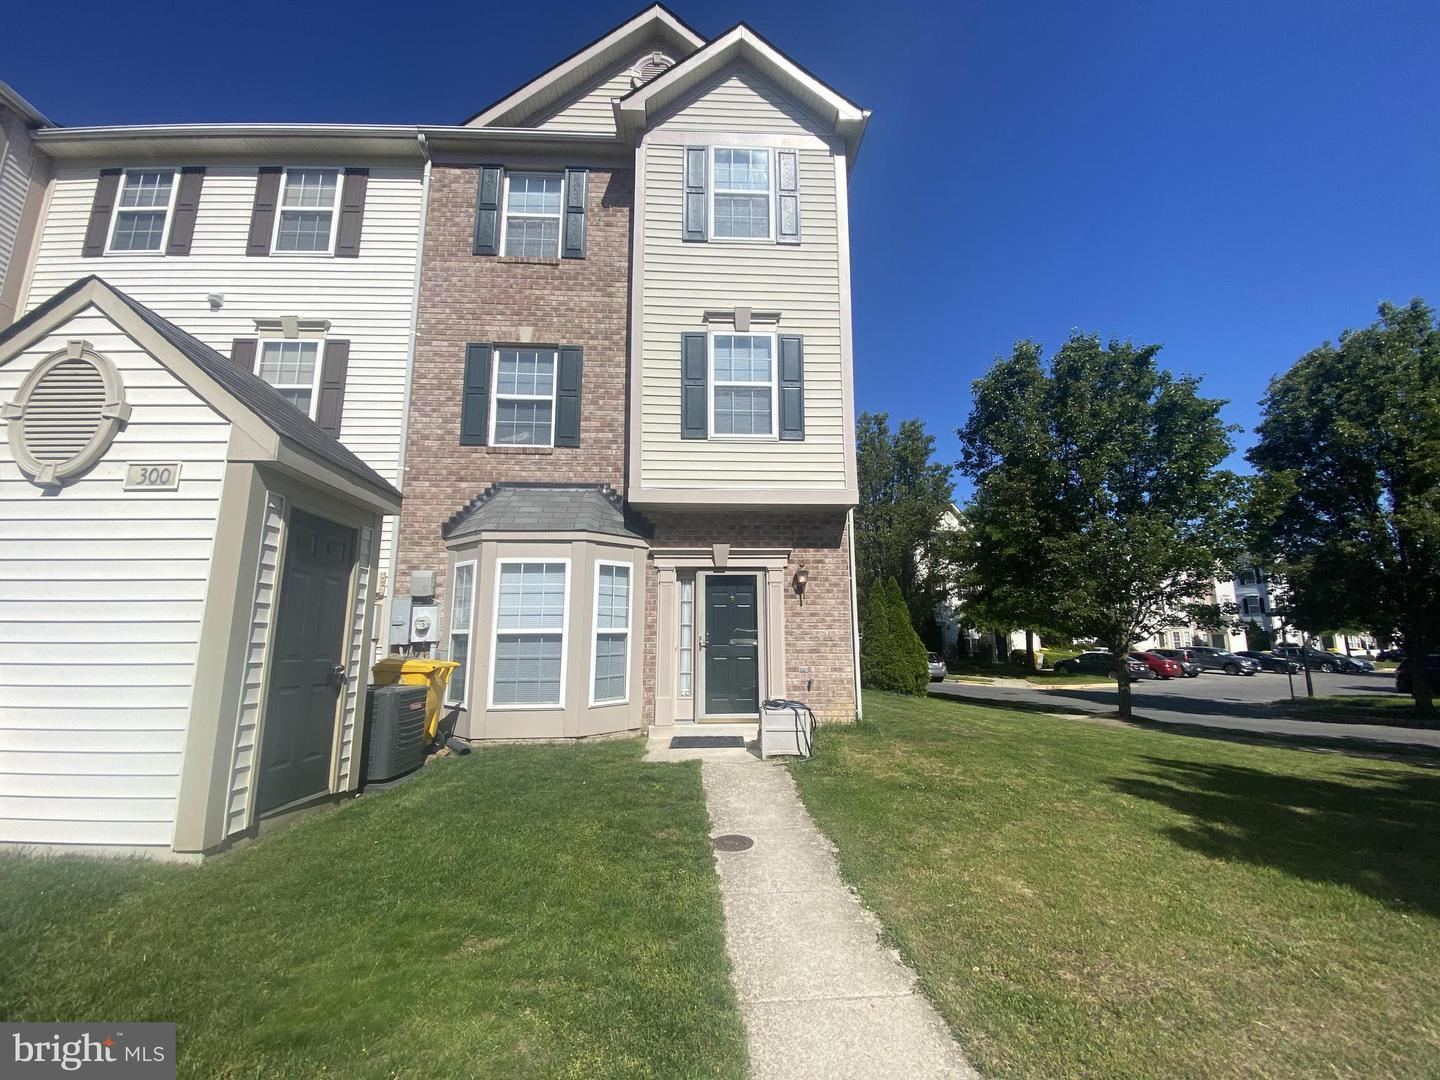 300 ASSEMBLY POINT CT, Odenton, MD 21113 - MLS#: MDAA468194